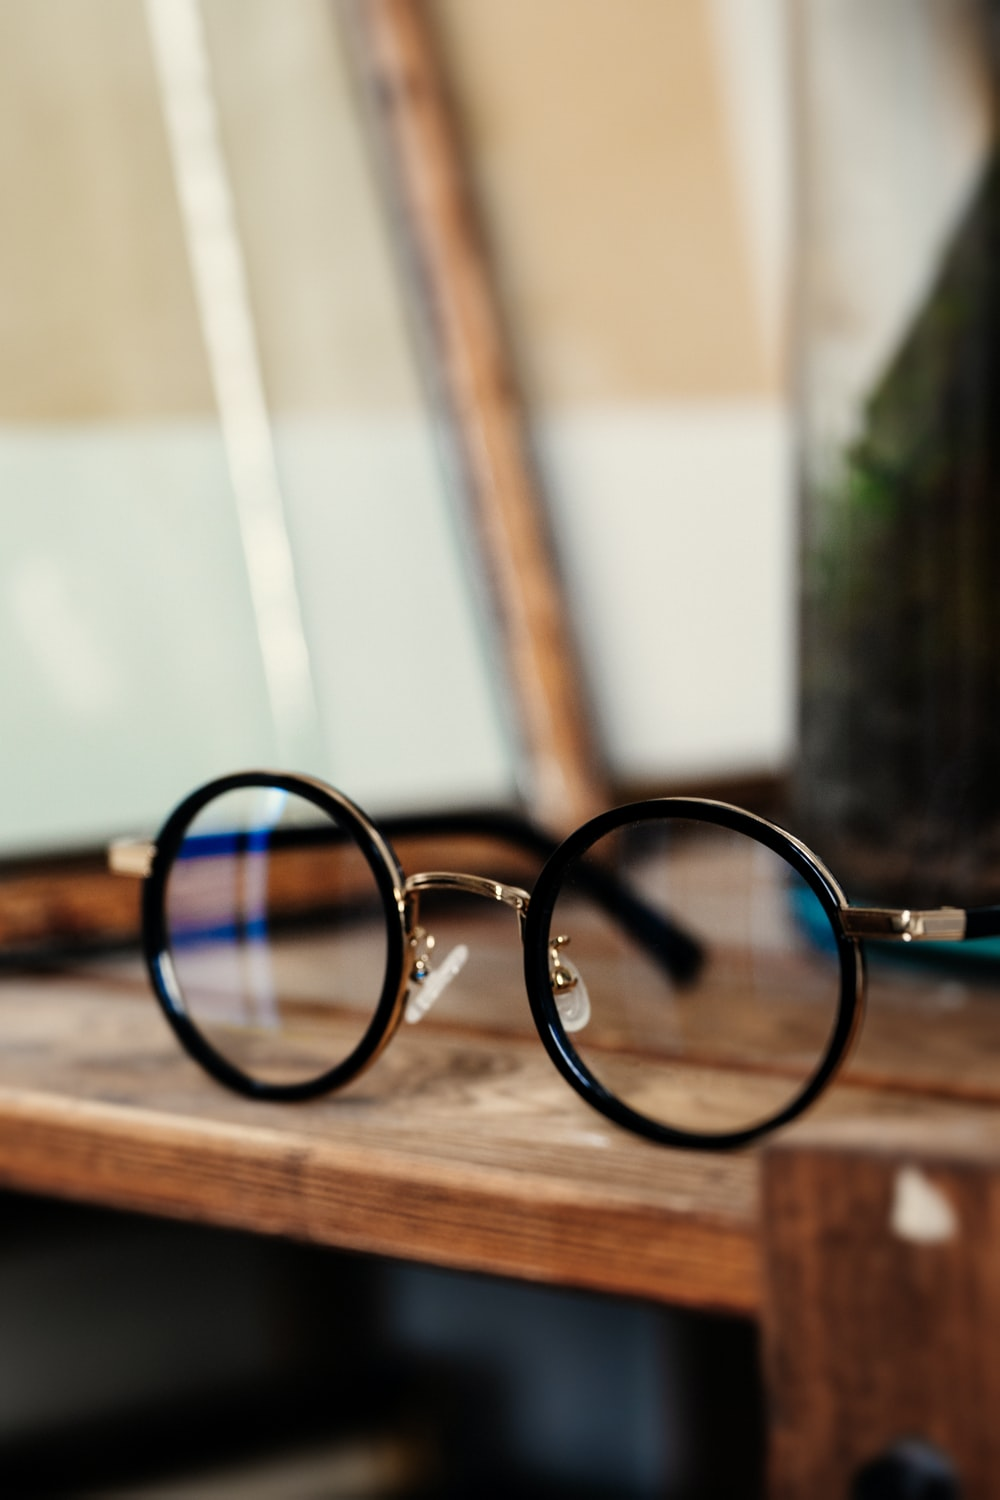 round black framed eyeglasses on table